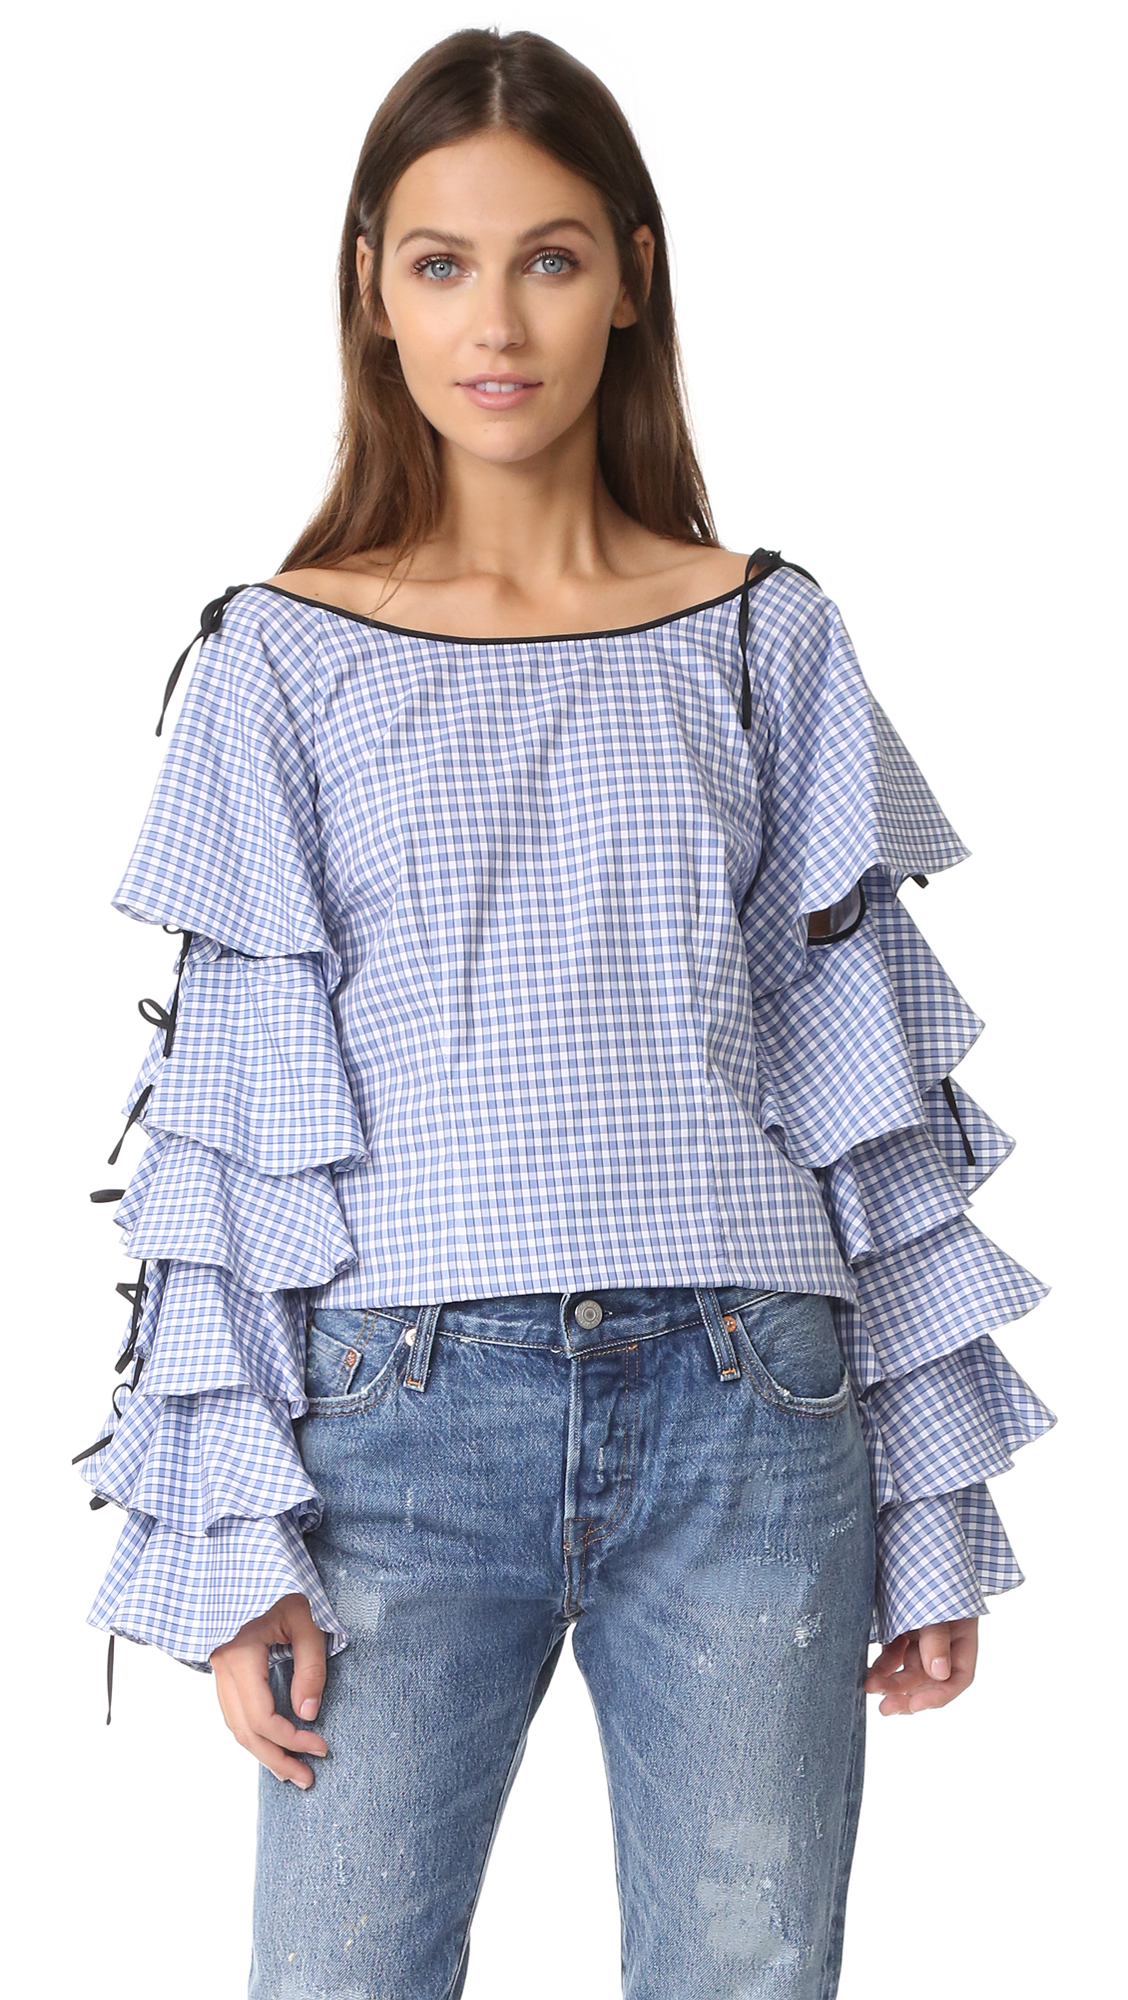 Voluminous ruffles embellish the long sleeves of this shoulder baring Caroline Constas top. Adjustable shoulder ties. Hidden back zip. Fabric: Poplin. 100% cotton. Dry clean. Made in the USA. Measurements Length: 24.5in / 62cm, from shoulder Measurements from